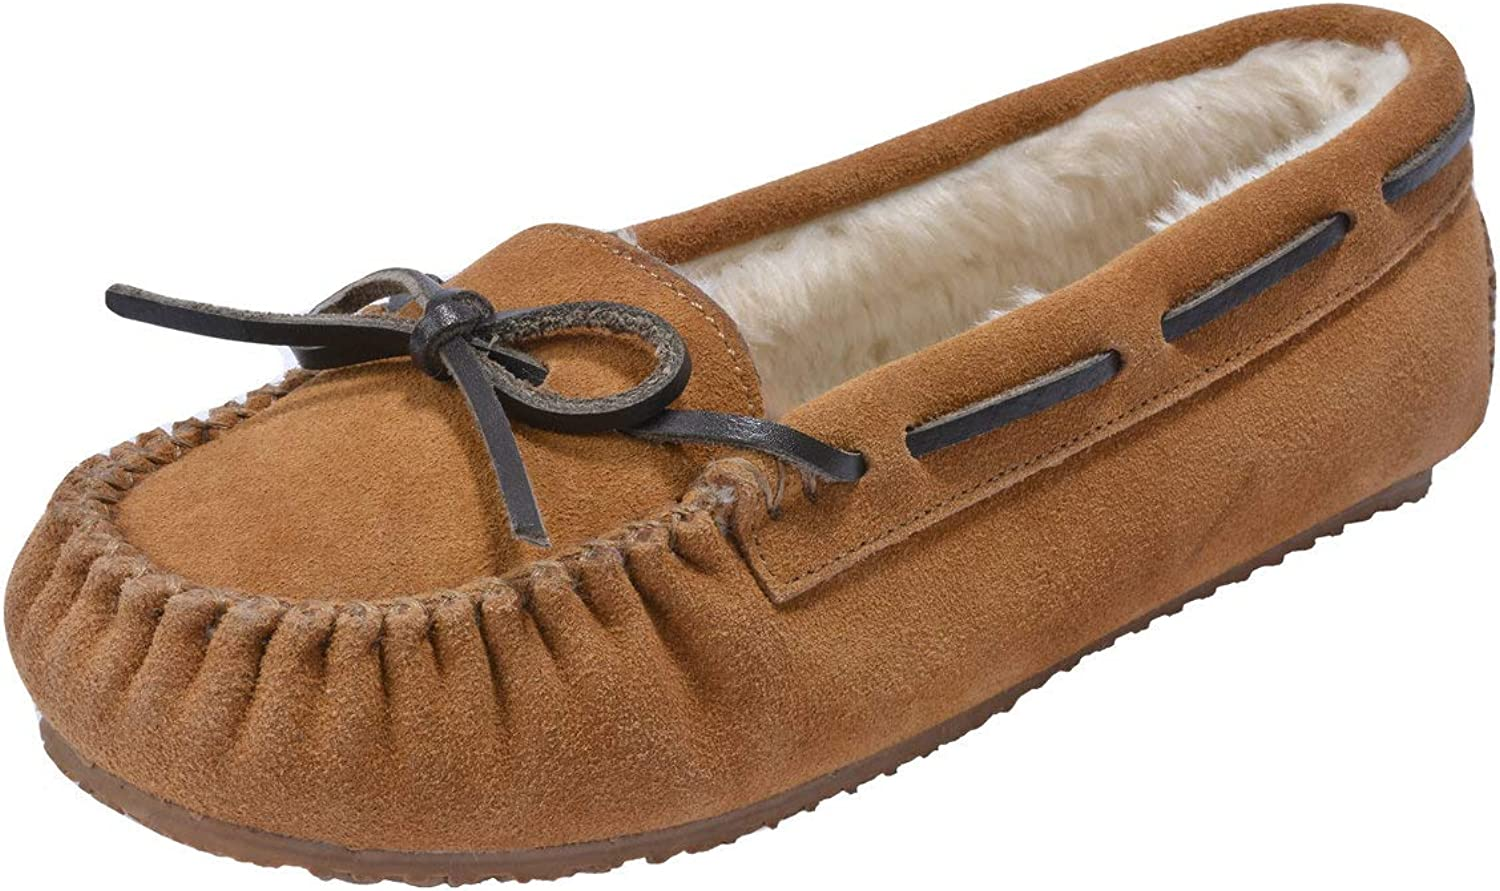 MOC PAPA Women's Cow Suede Moccasin Slip On Flat shoes